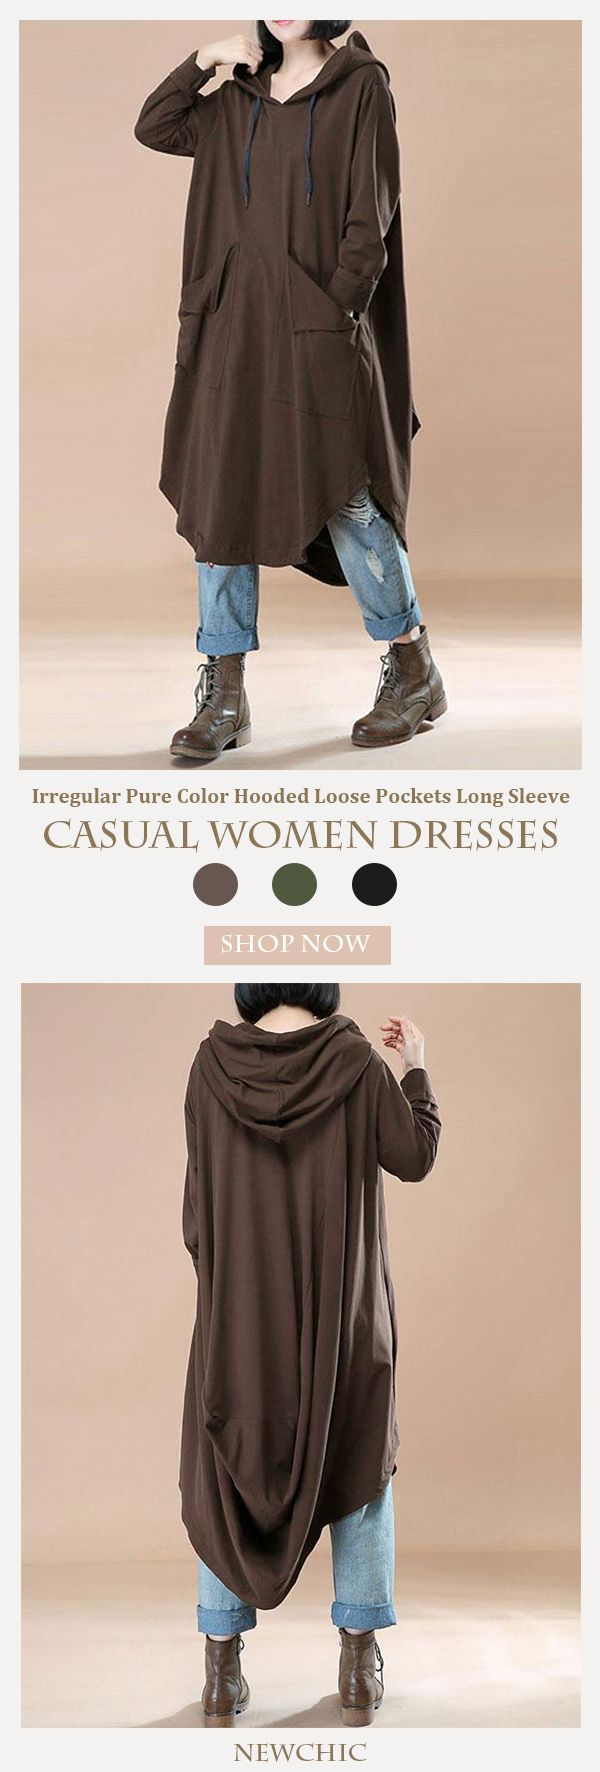 [Newchic Online Shopping] 45%OFF Casual Irregular Pure Color Hooded Loose Pockets Long Sleeve Women Dresses